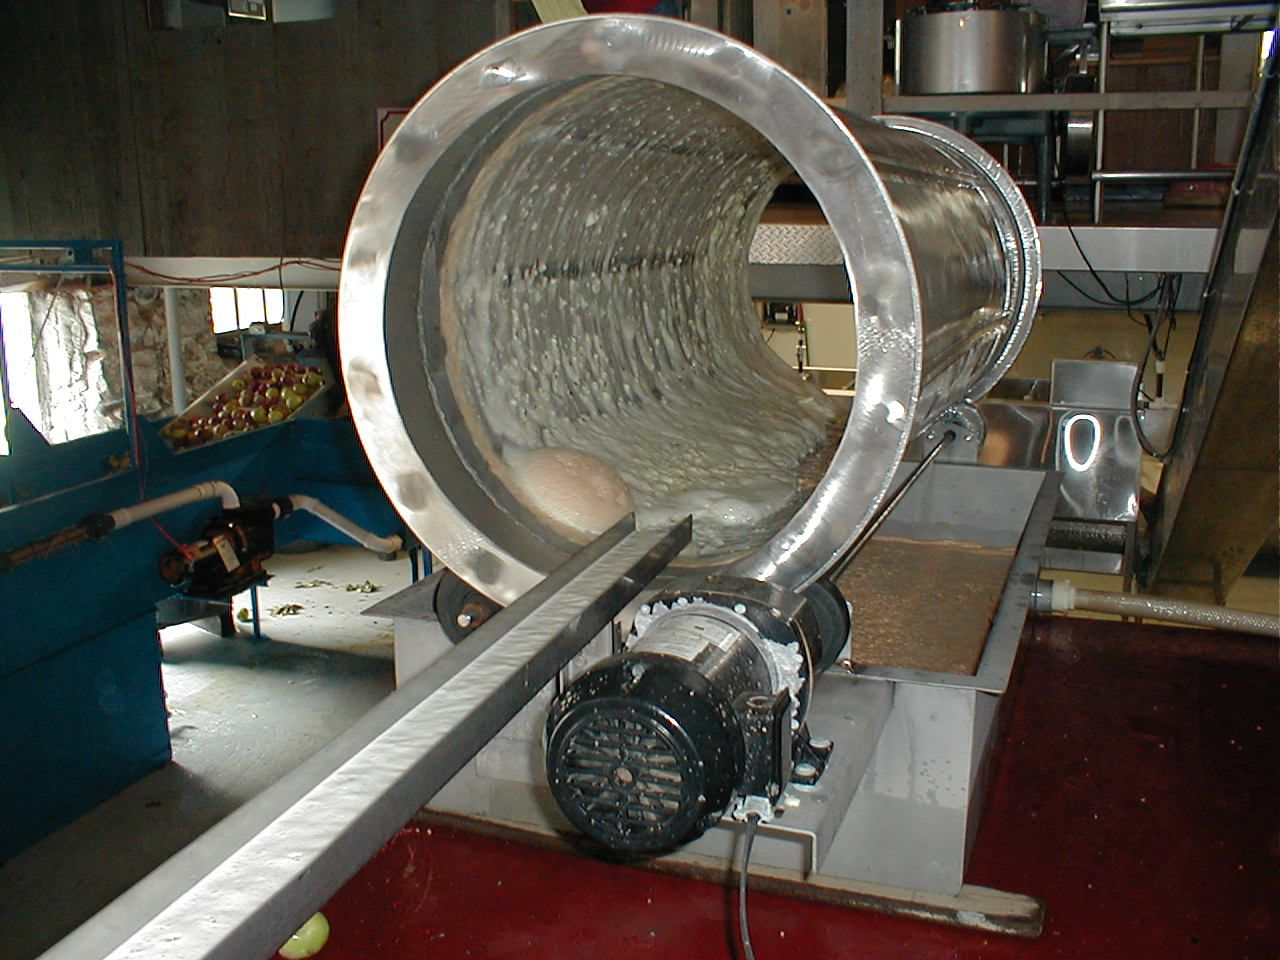 4. After the cider is squeezed from the apples, it runs through another filter, which takes out any remaining seeds, or large pectin particles. Once the cider passes this filter, it is immediately collected in a refrigerated stainless steel tank.